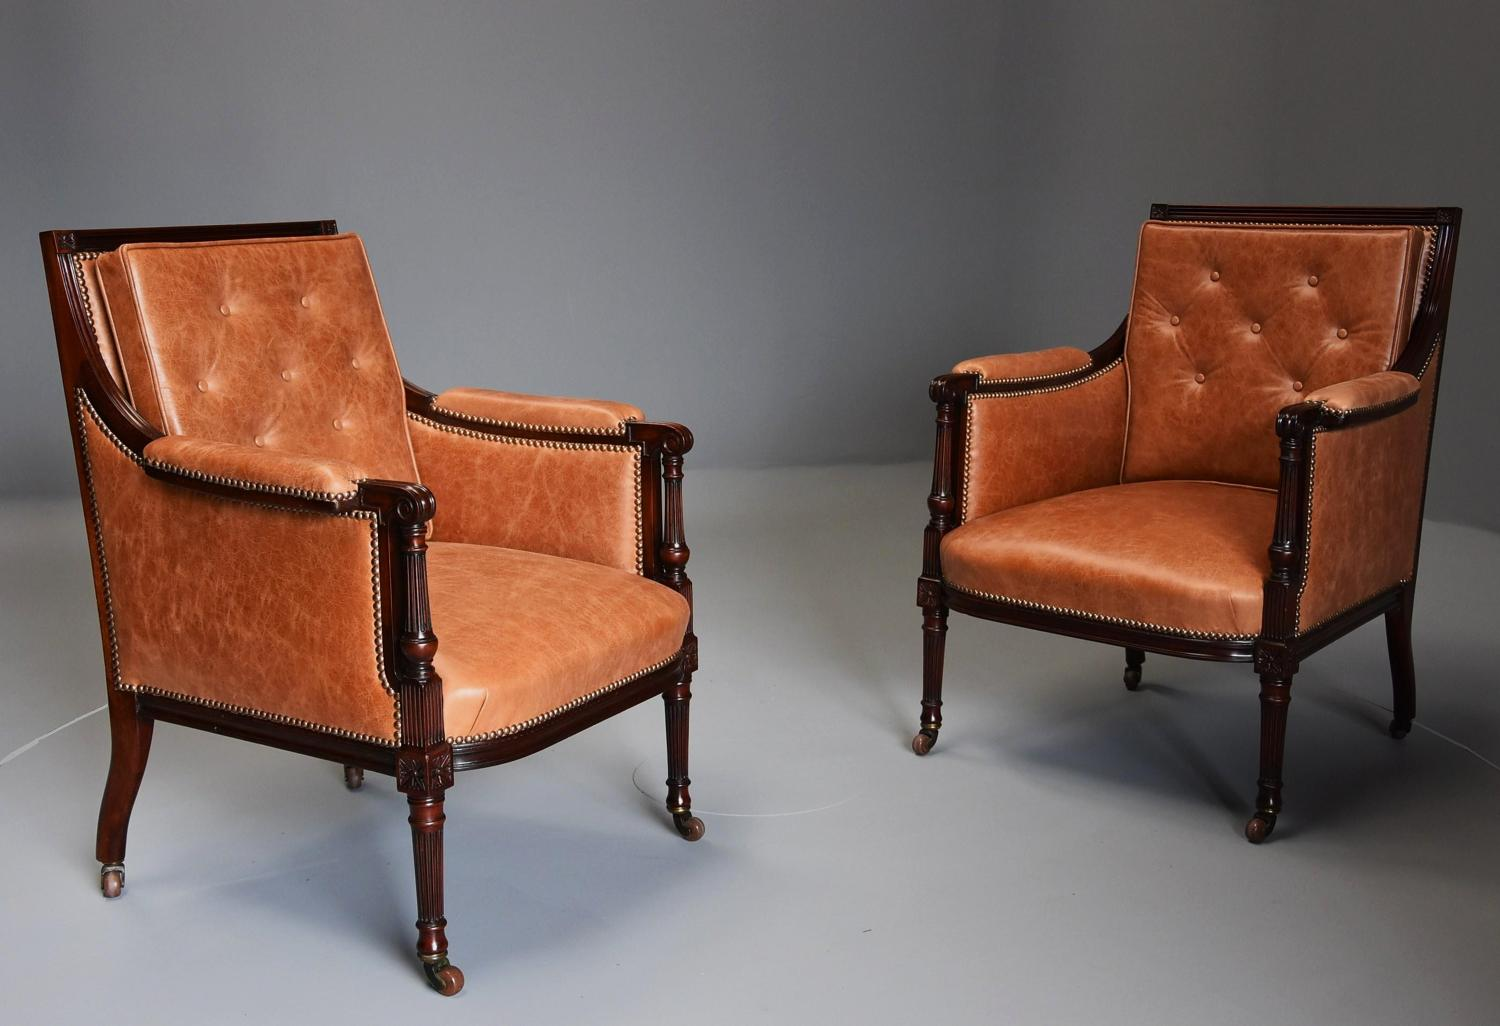 Superb pair of Sheraton style 'His & Hers' mahogany library chairs